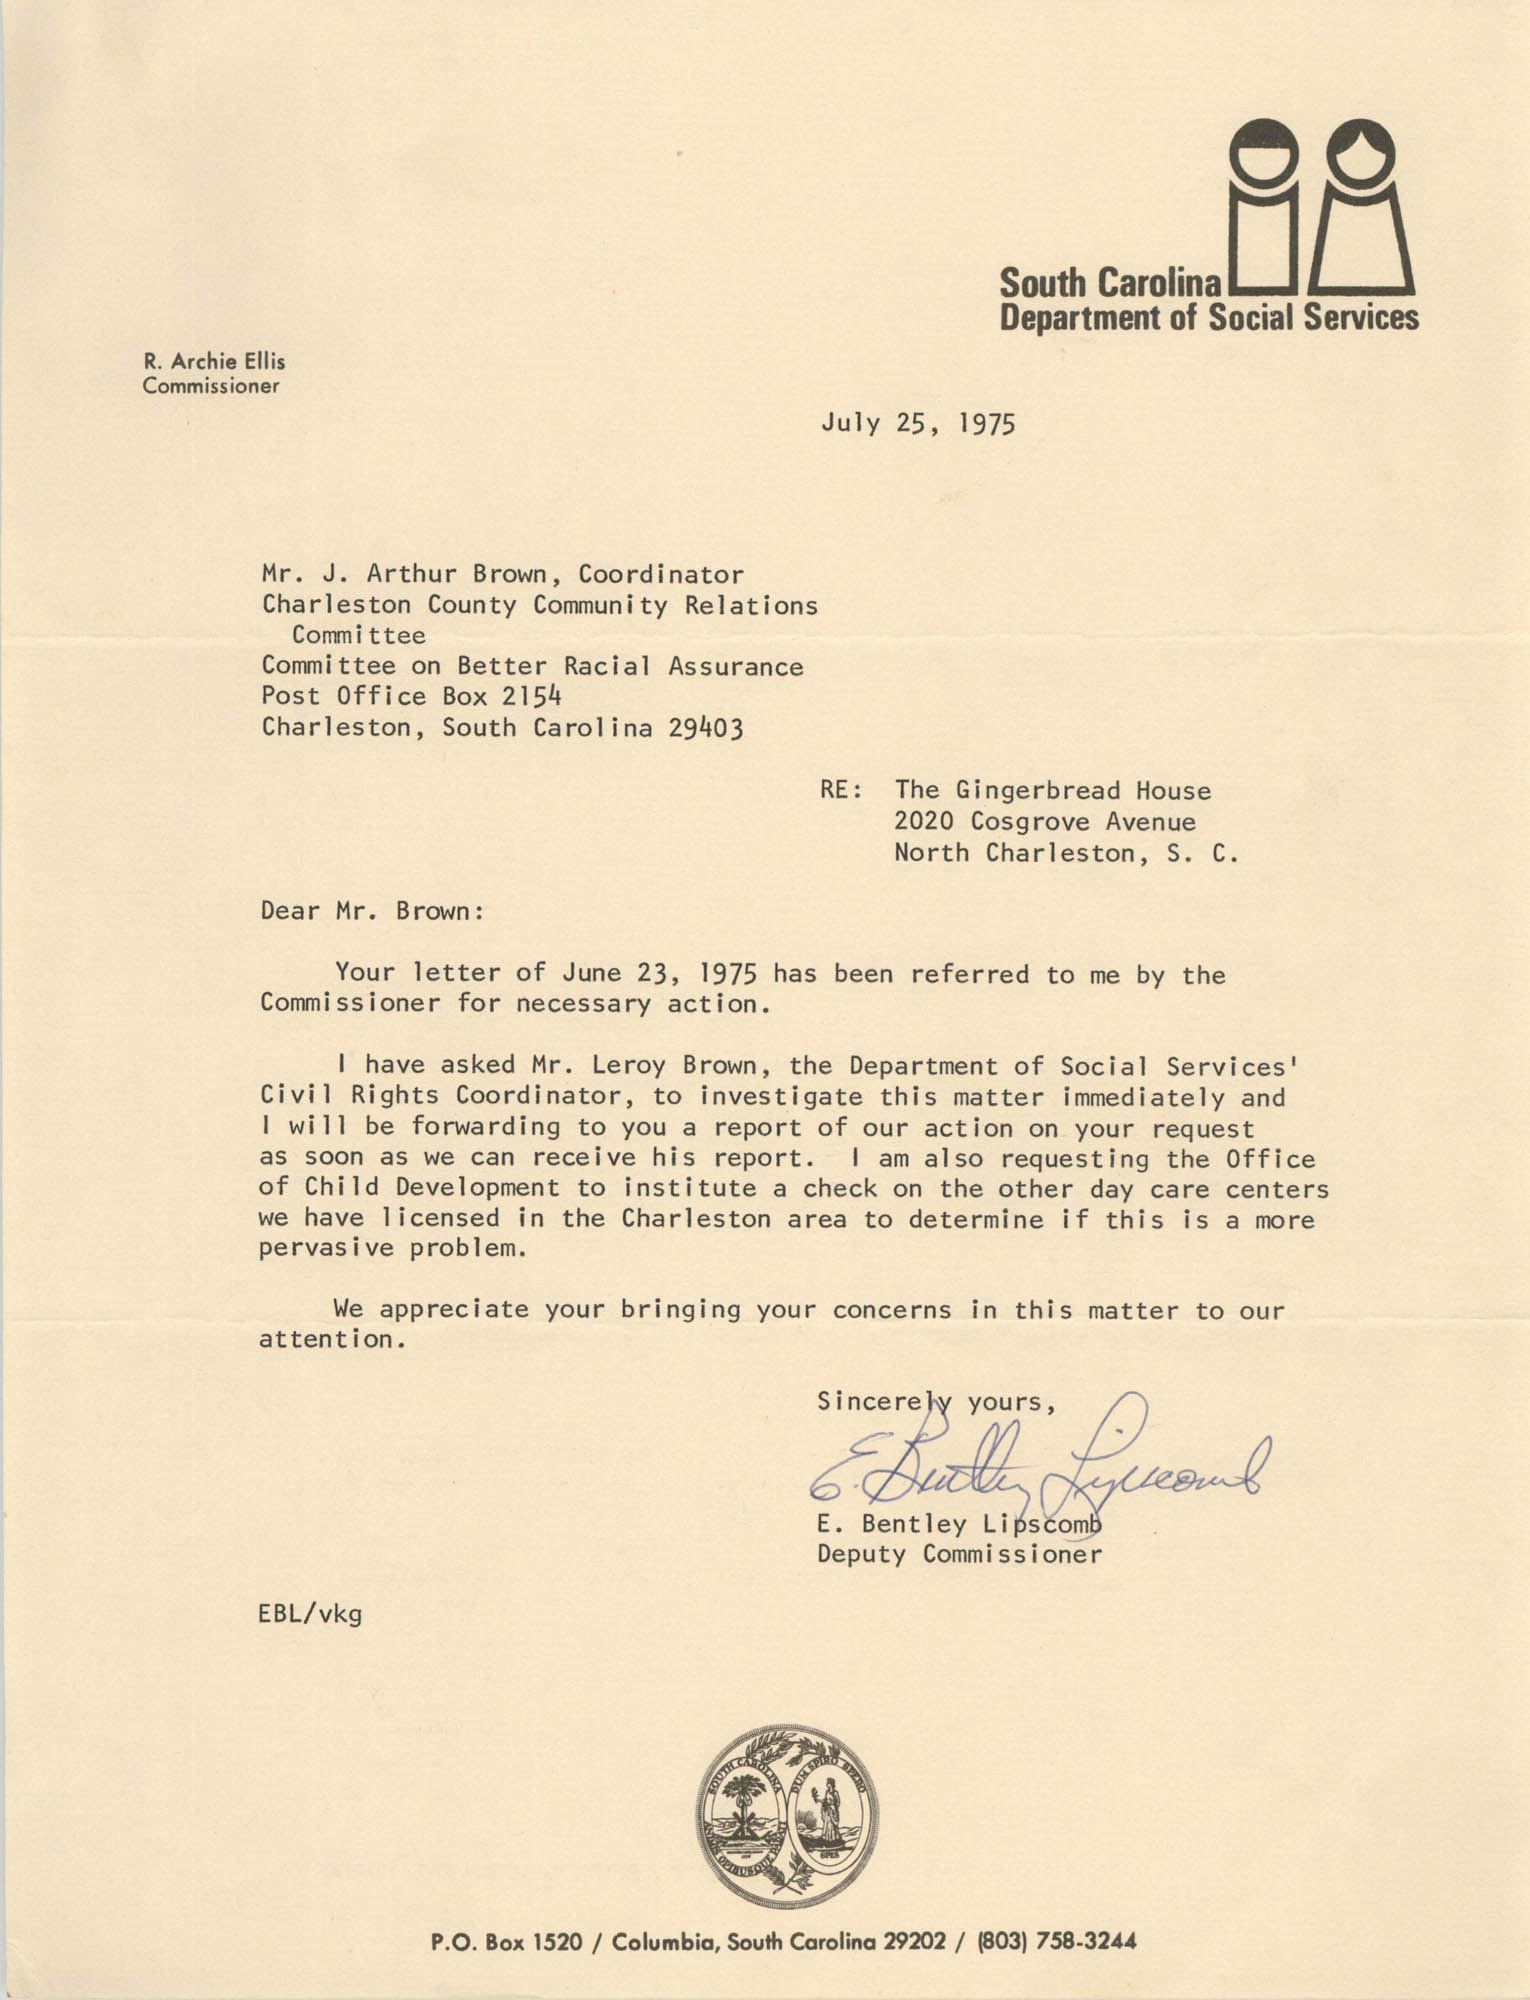 Letter from E. Bentley Lipscomb to J. Arthur Brown, July 25, 1975